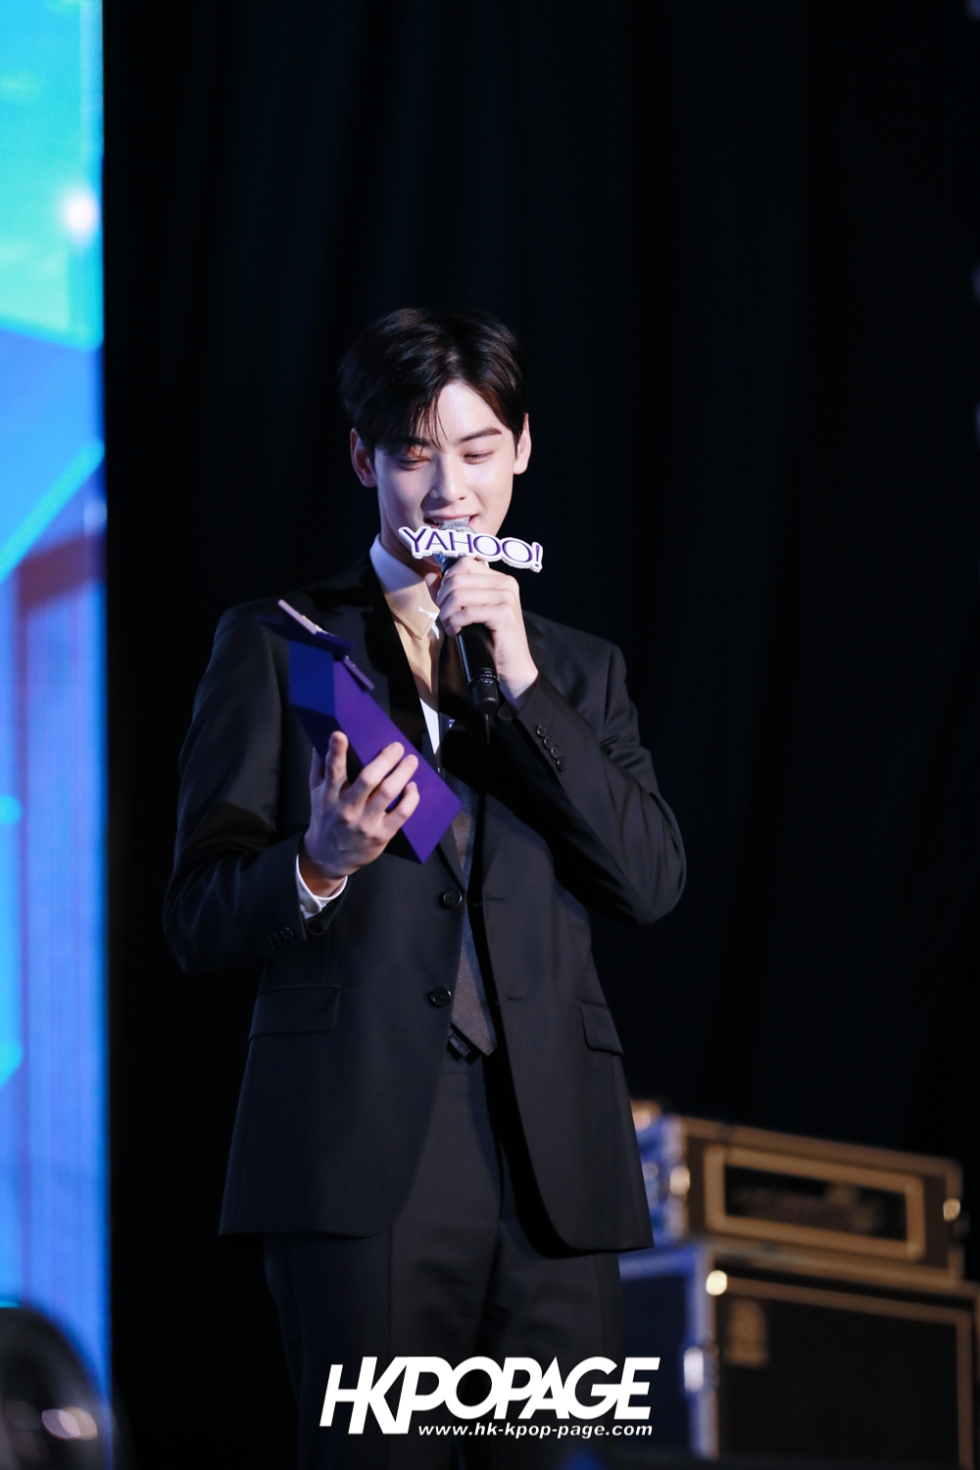 [HK.KPOP.PAGE] 181212_Cha Eun Woo_Yahoo Asia Buzz Awards 2018 presentation ceremony_-20